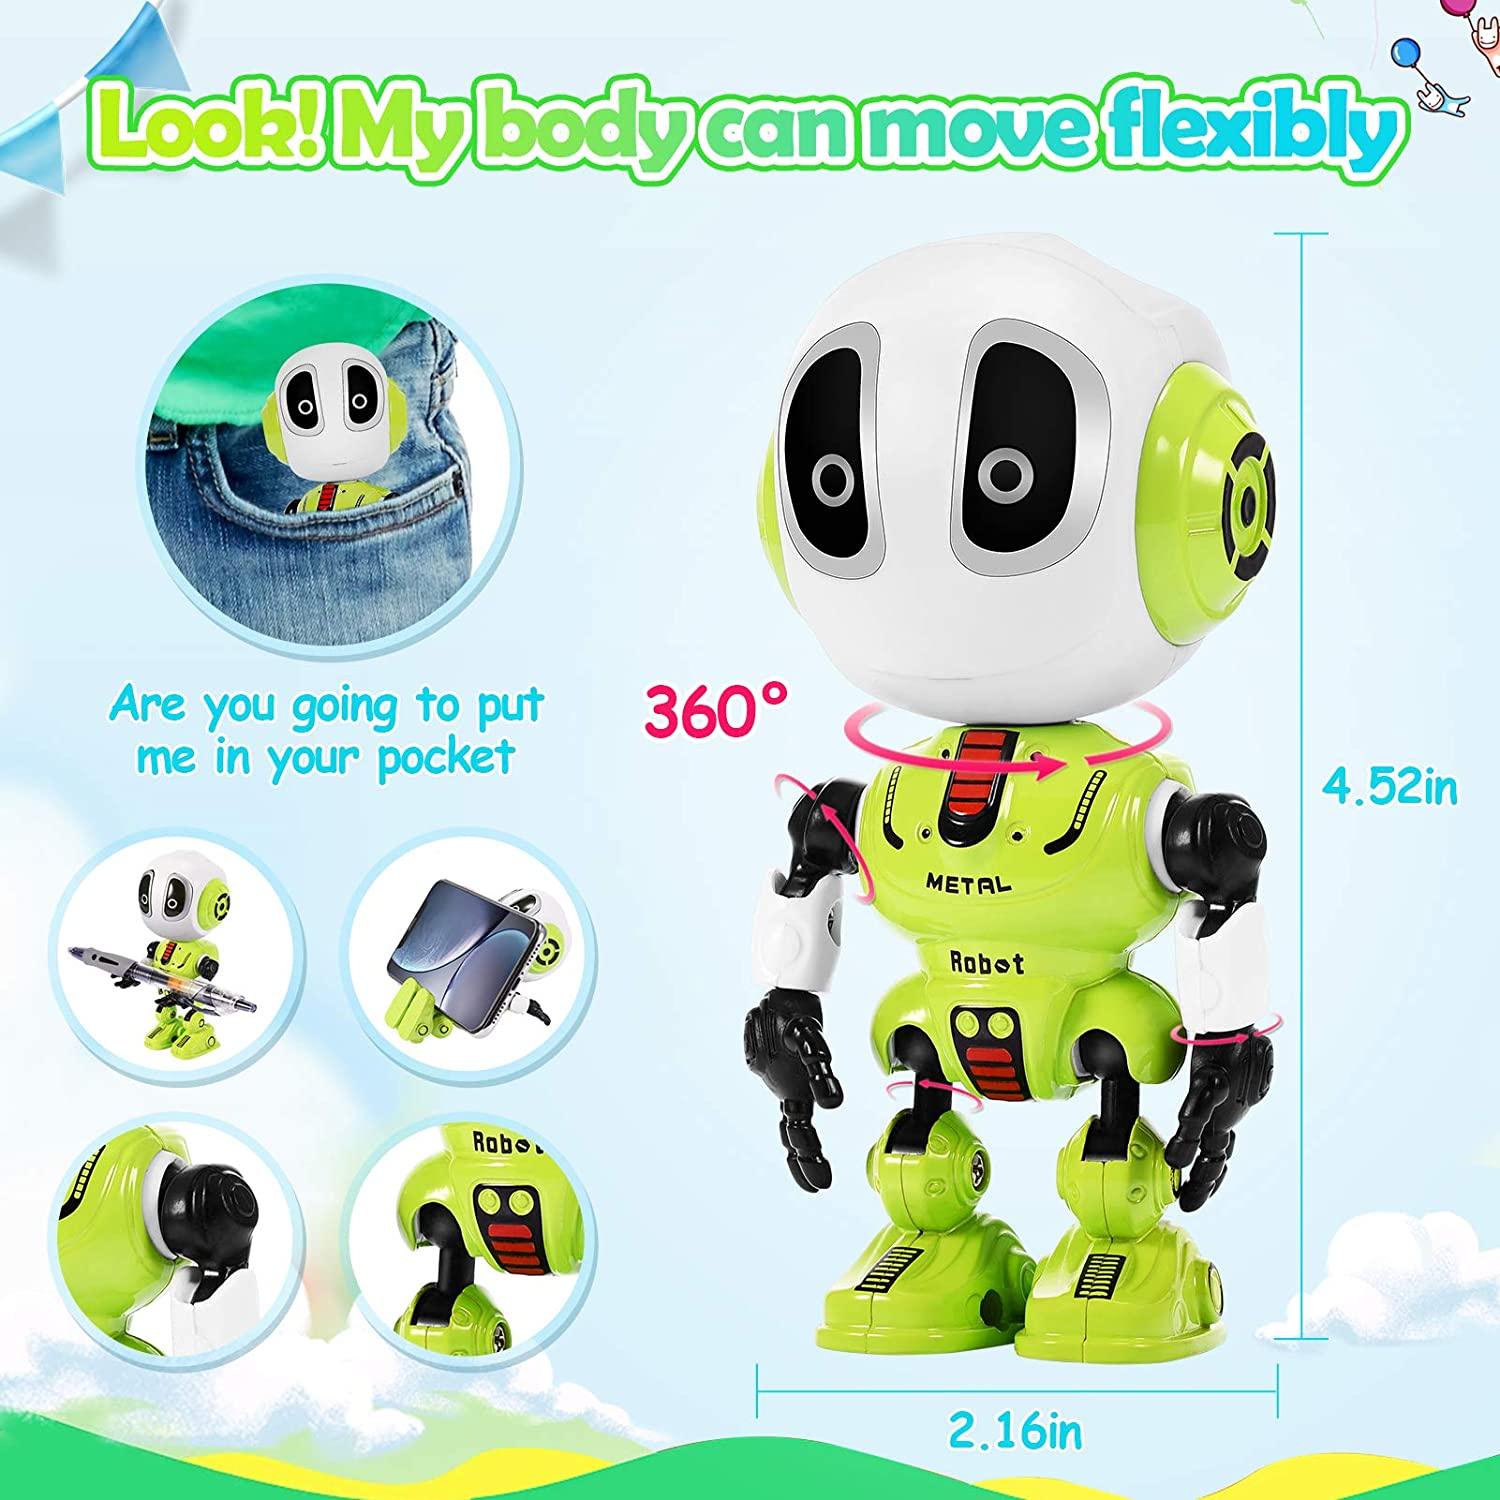 Blue Tesoky Toys for 3-12 Year Old Boys Girls Fun Talking Robot Boys Girls Toys Age 4-6 Interactive Recharge Robot Toy for Kids Repeat What You say with LED Eyes Flexible Body Halloween Xmas